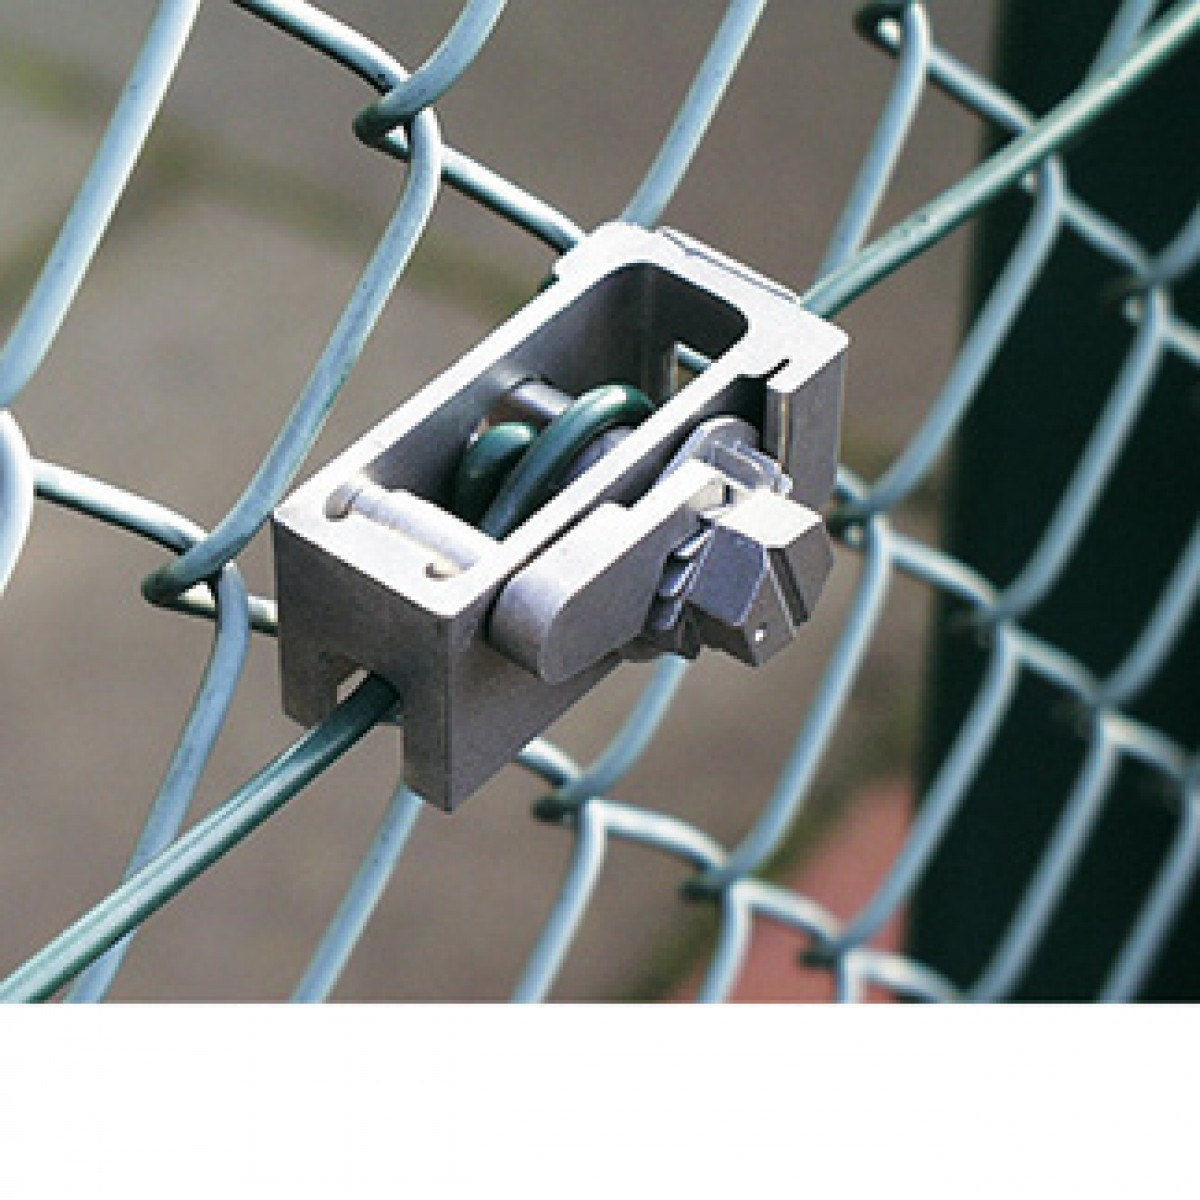 Quick Tensioner - Wire Tensioners, general - Fence Building Supplies ...